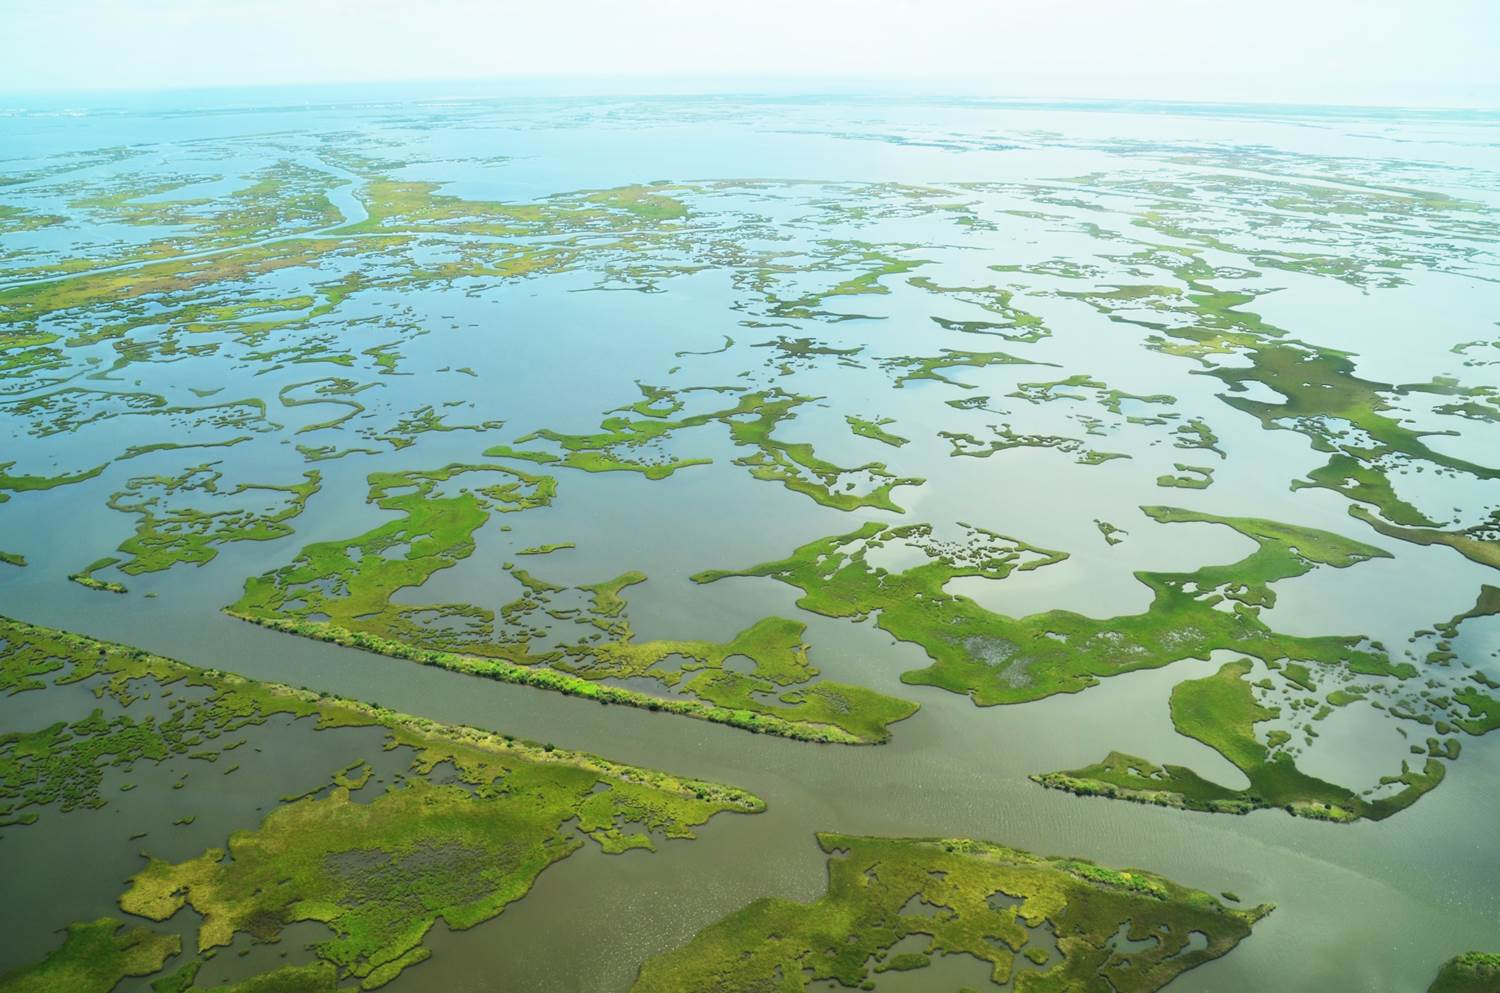 aerial view of Barataria basin